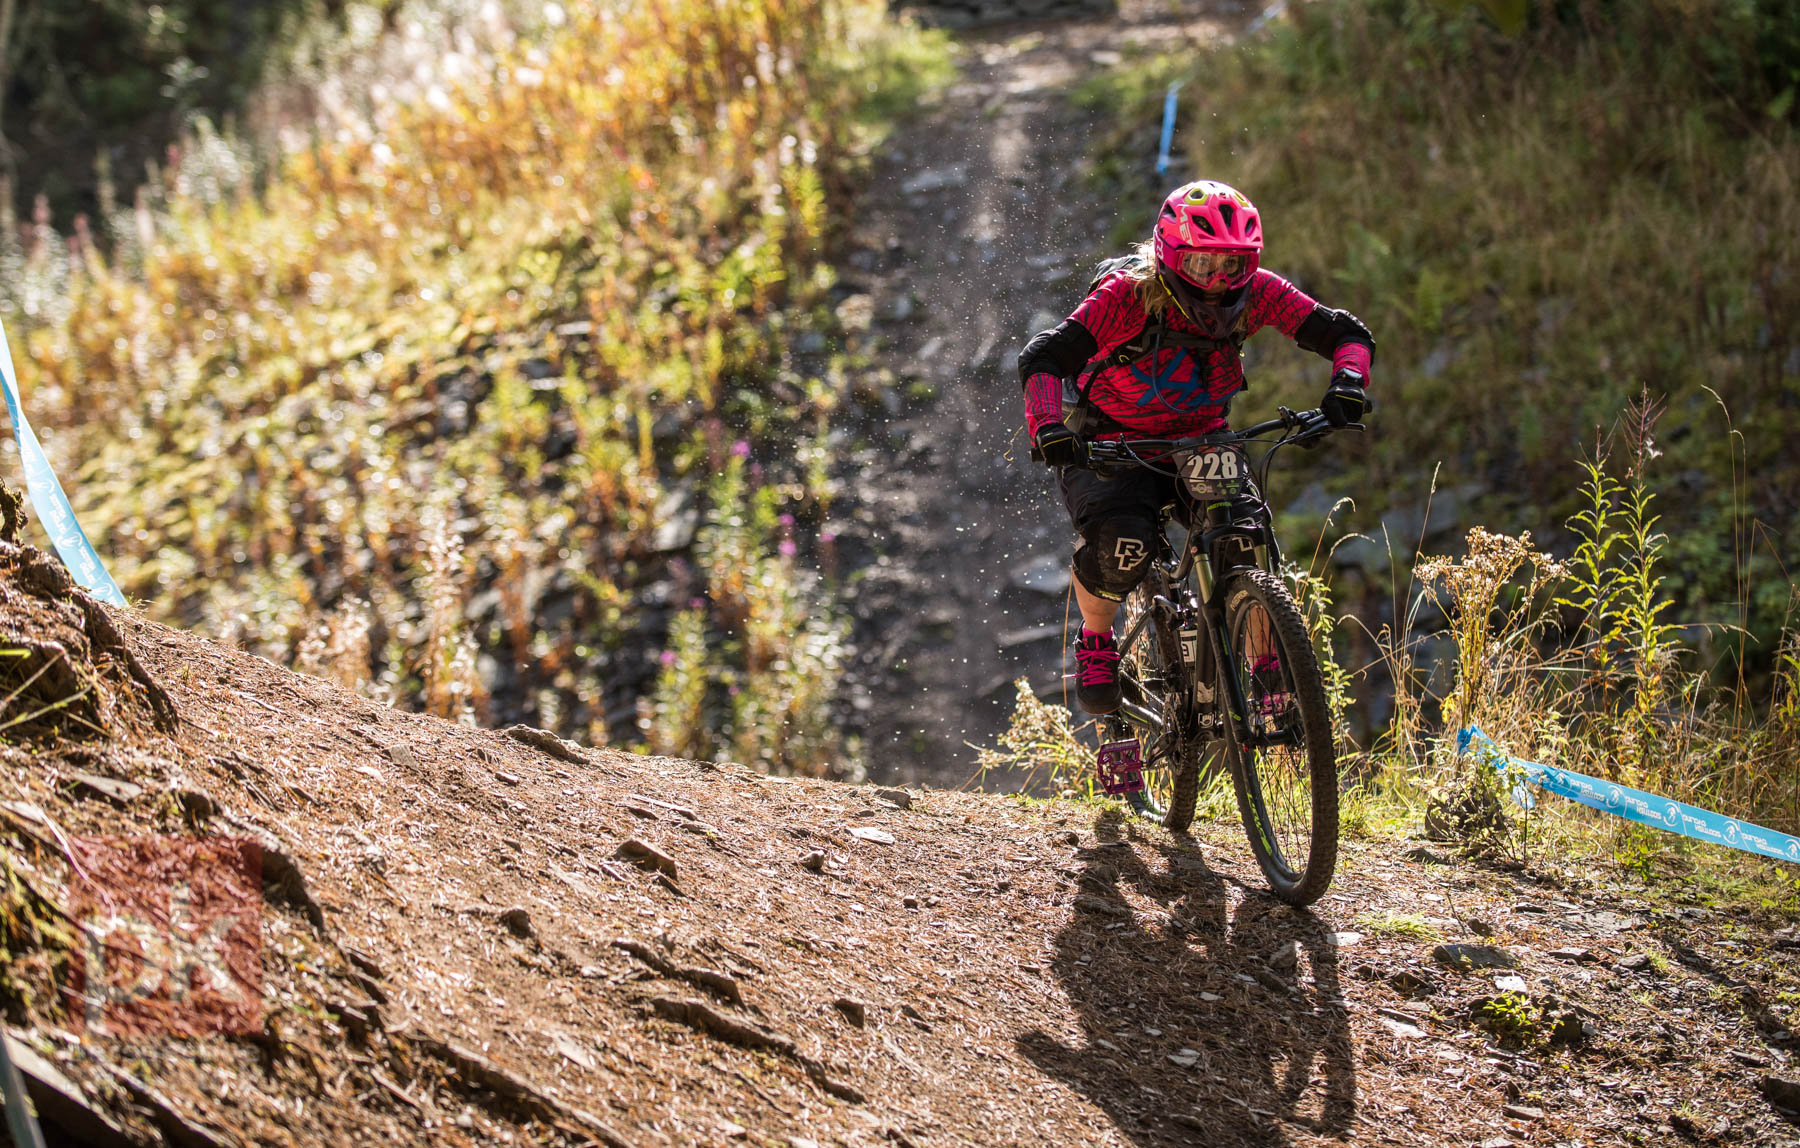 The Forfar Funduro is another top-notch Muckmedden event and tested the riders well.